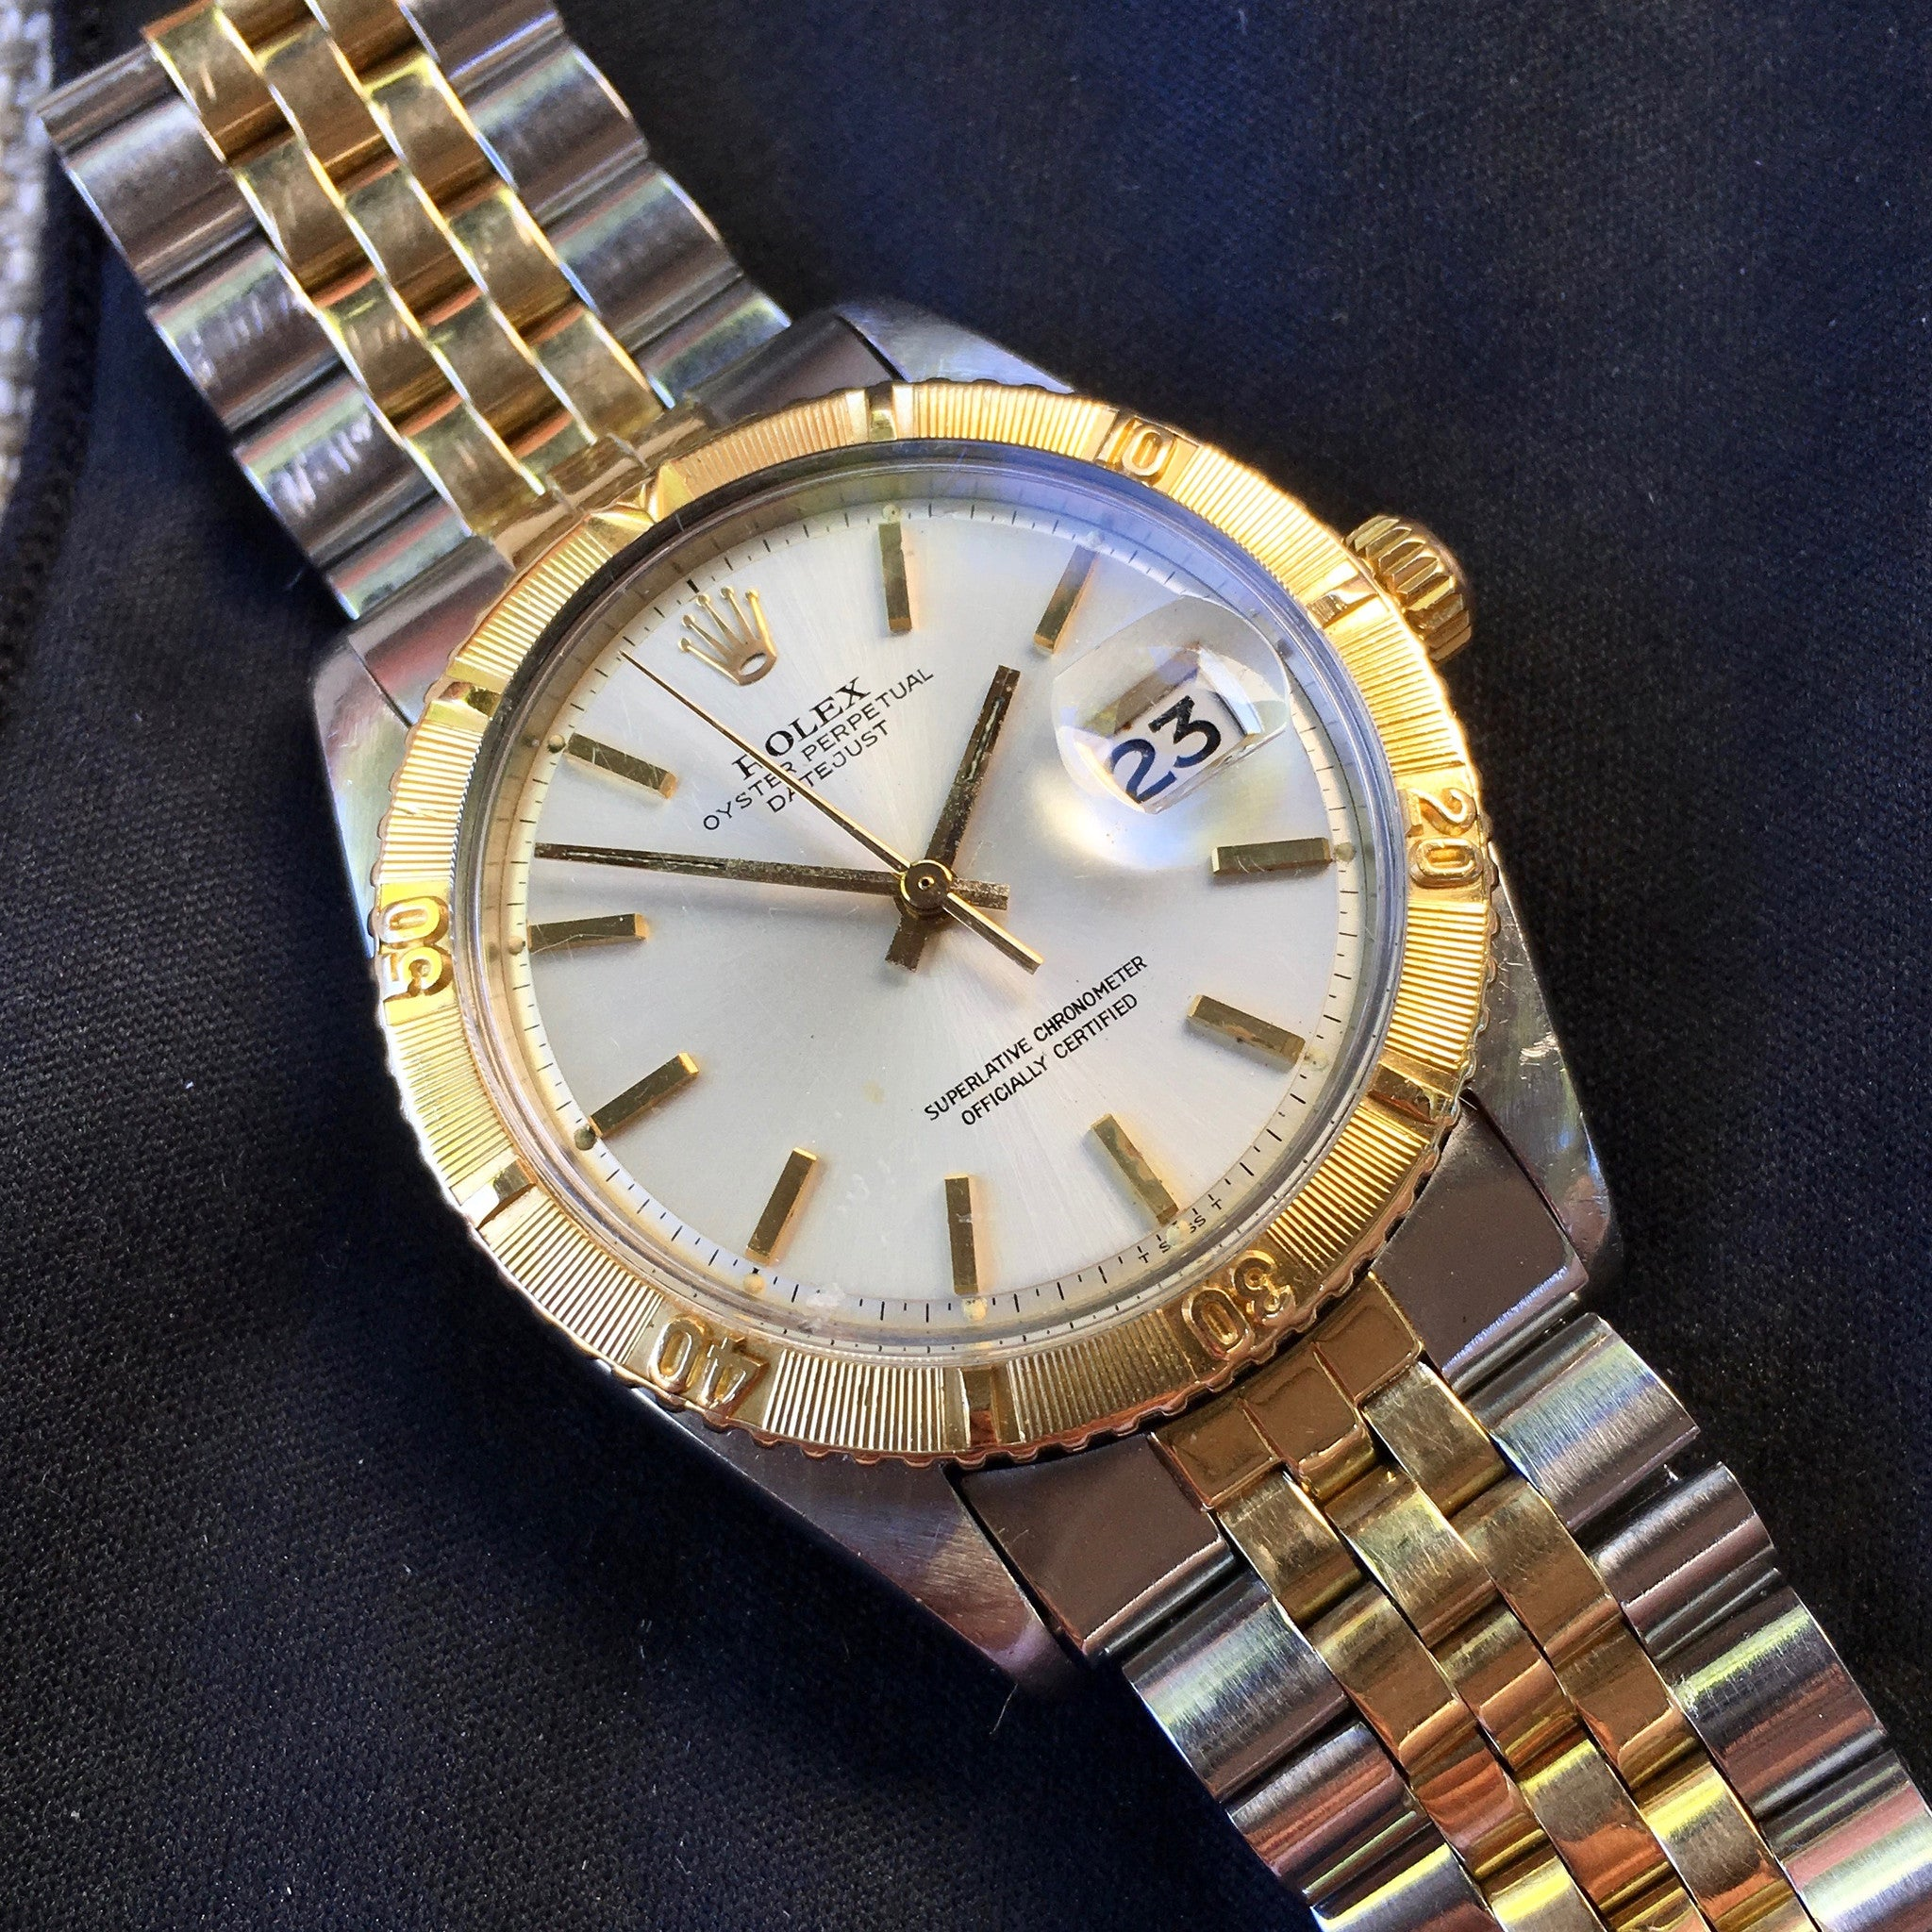 Vintage Rolex Thunderbird Datejust 1625 Two Tone 14K Steel 1968 Cal. 1570 Jubilee Watch